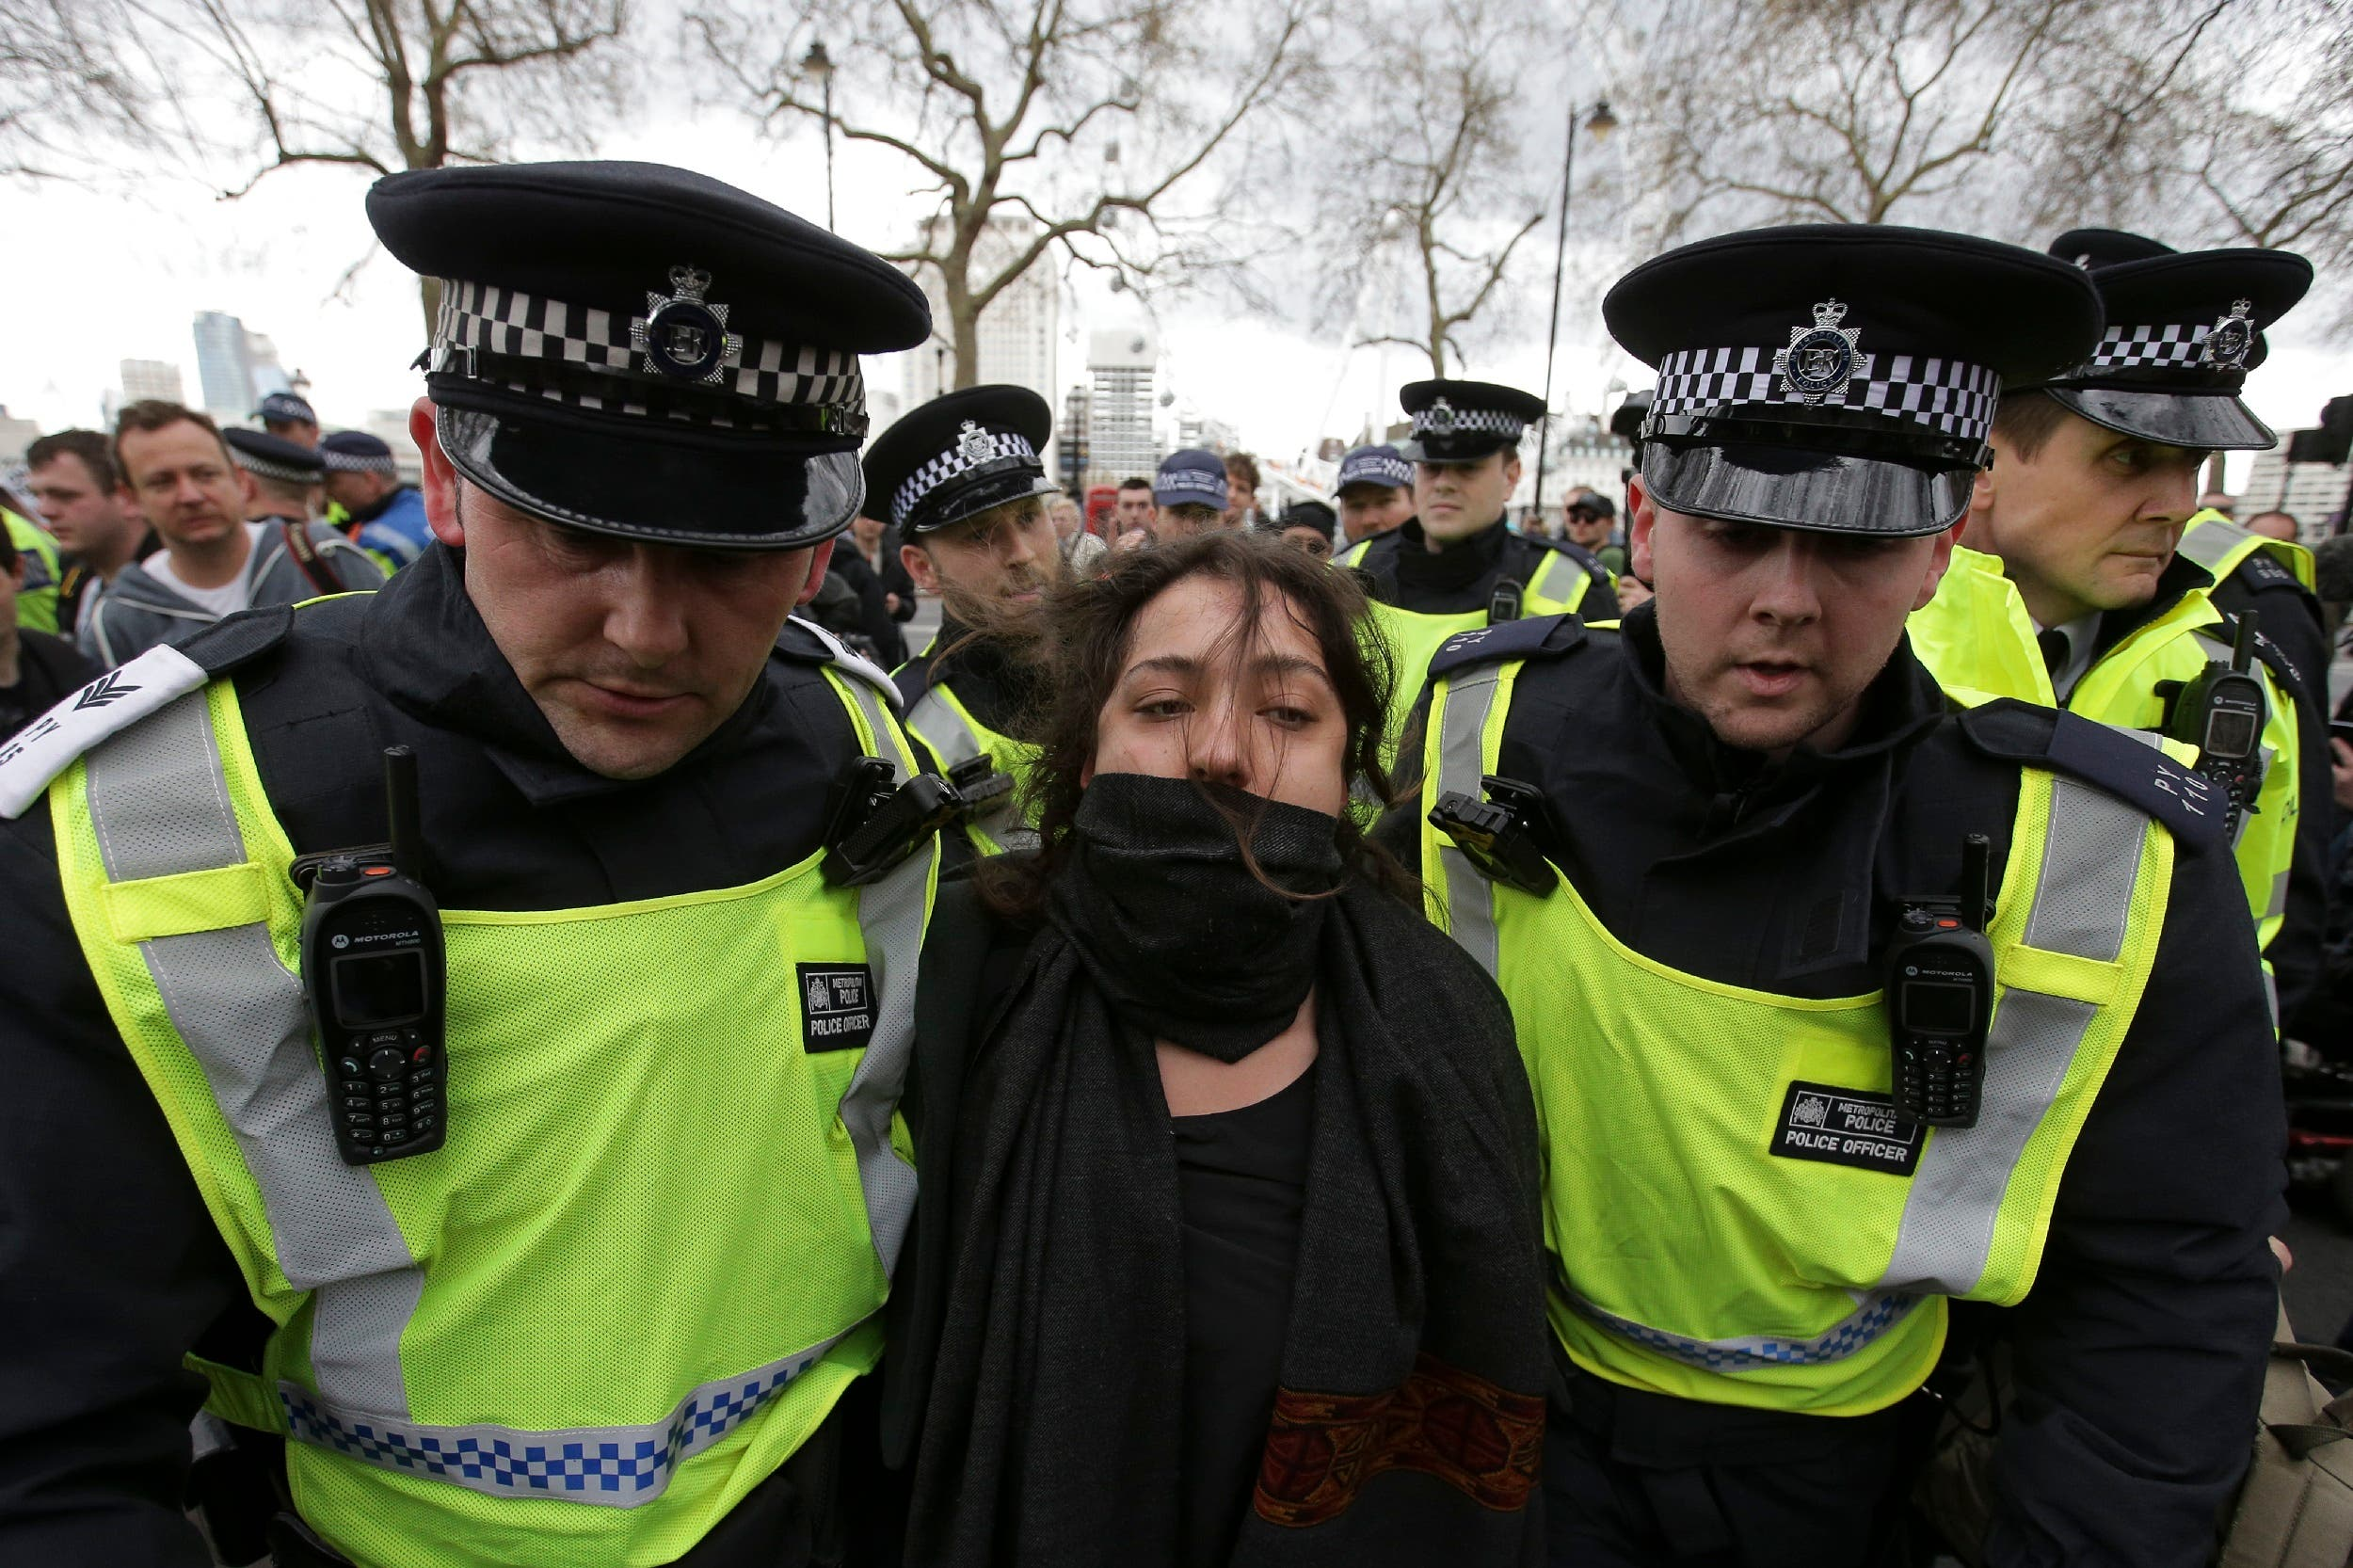 An activist from a counter demonstration organized by the Unite Against Fascism against the marches by the far-right groups Britain First and the English Defense League (EDL) is detained by police in central London on April 1, 2017. (AFP)